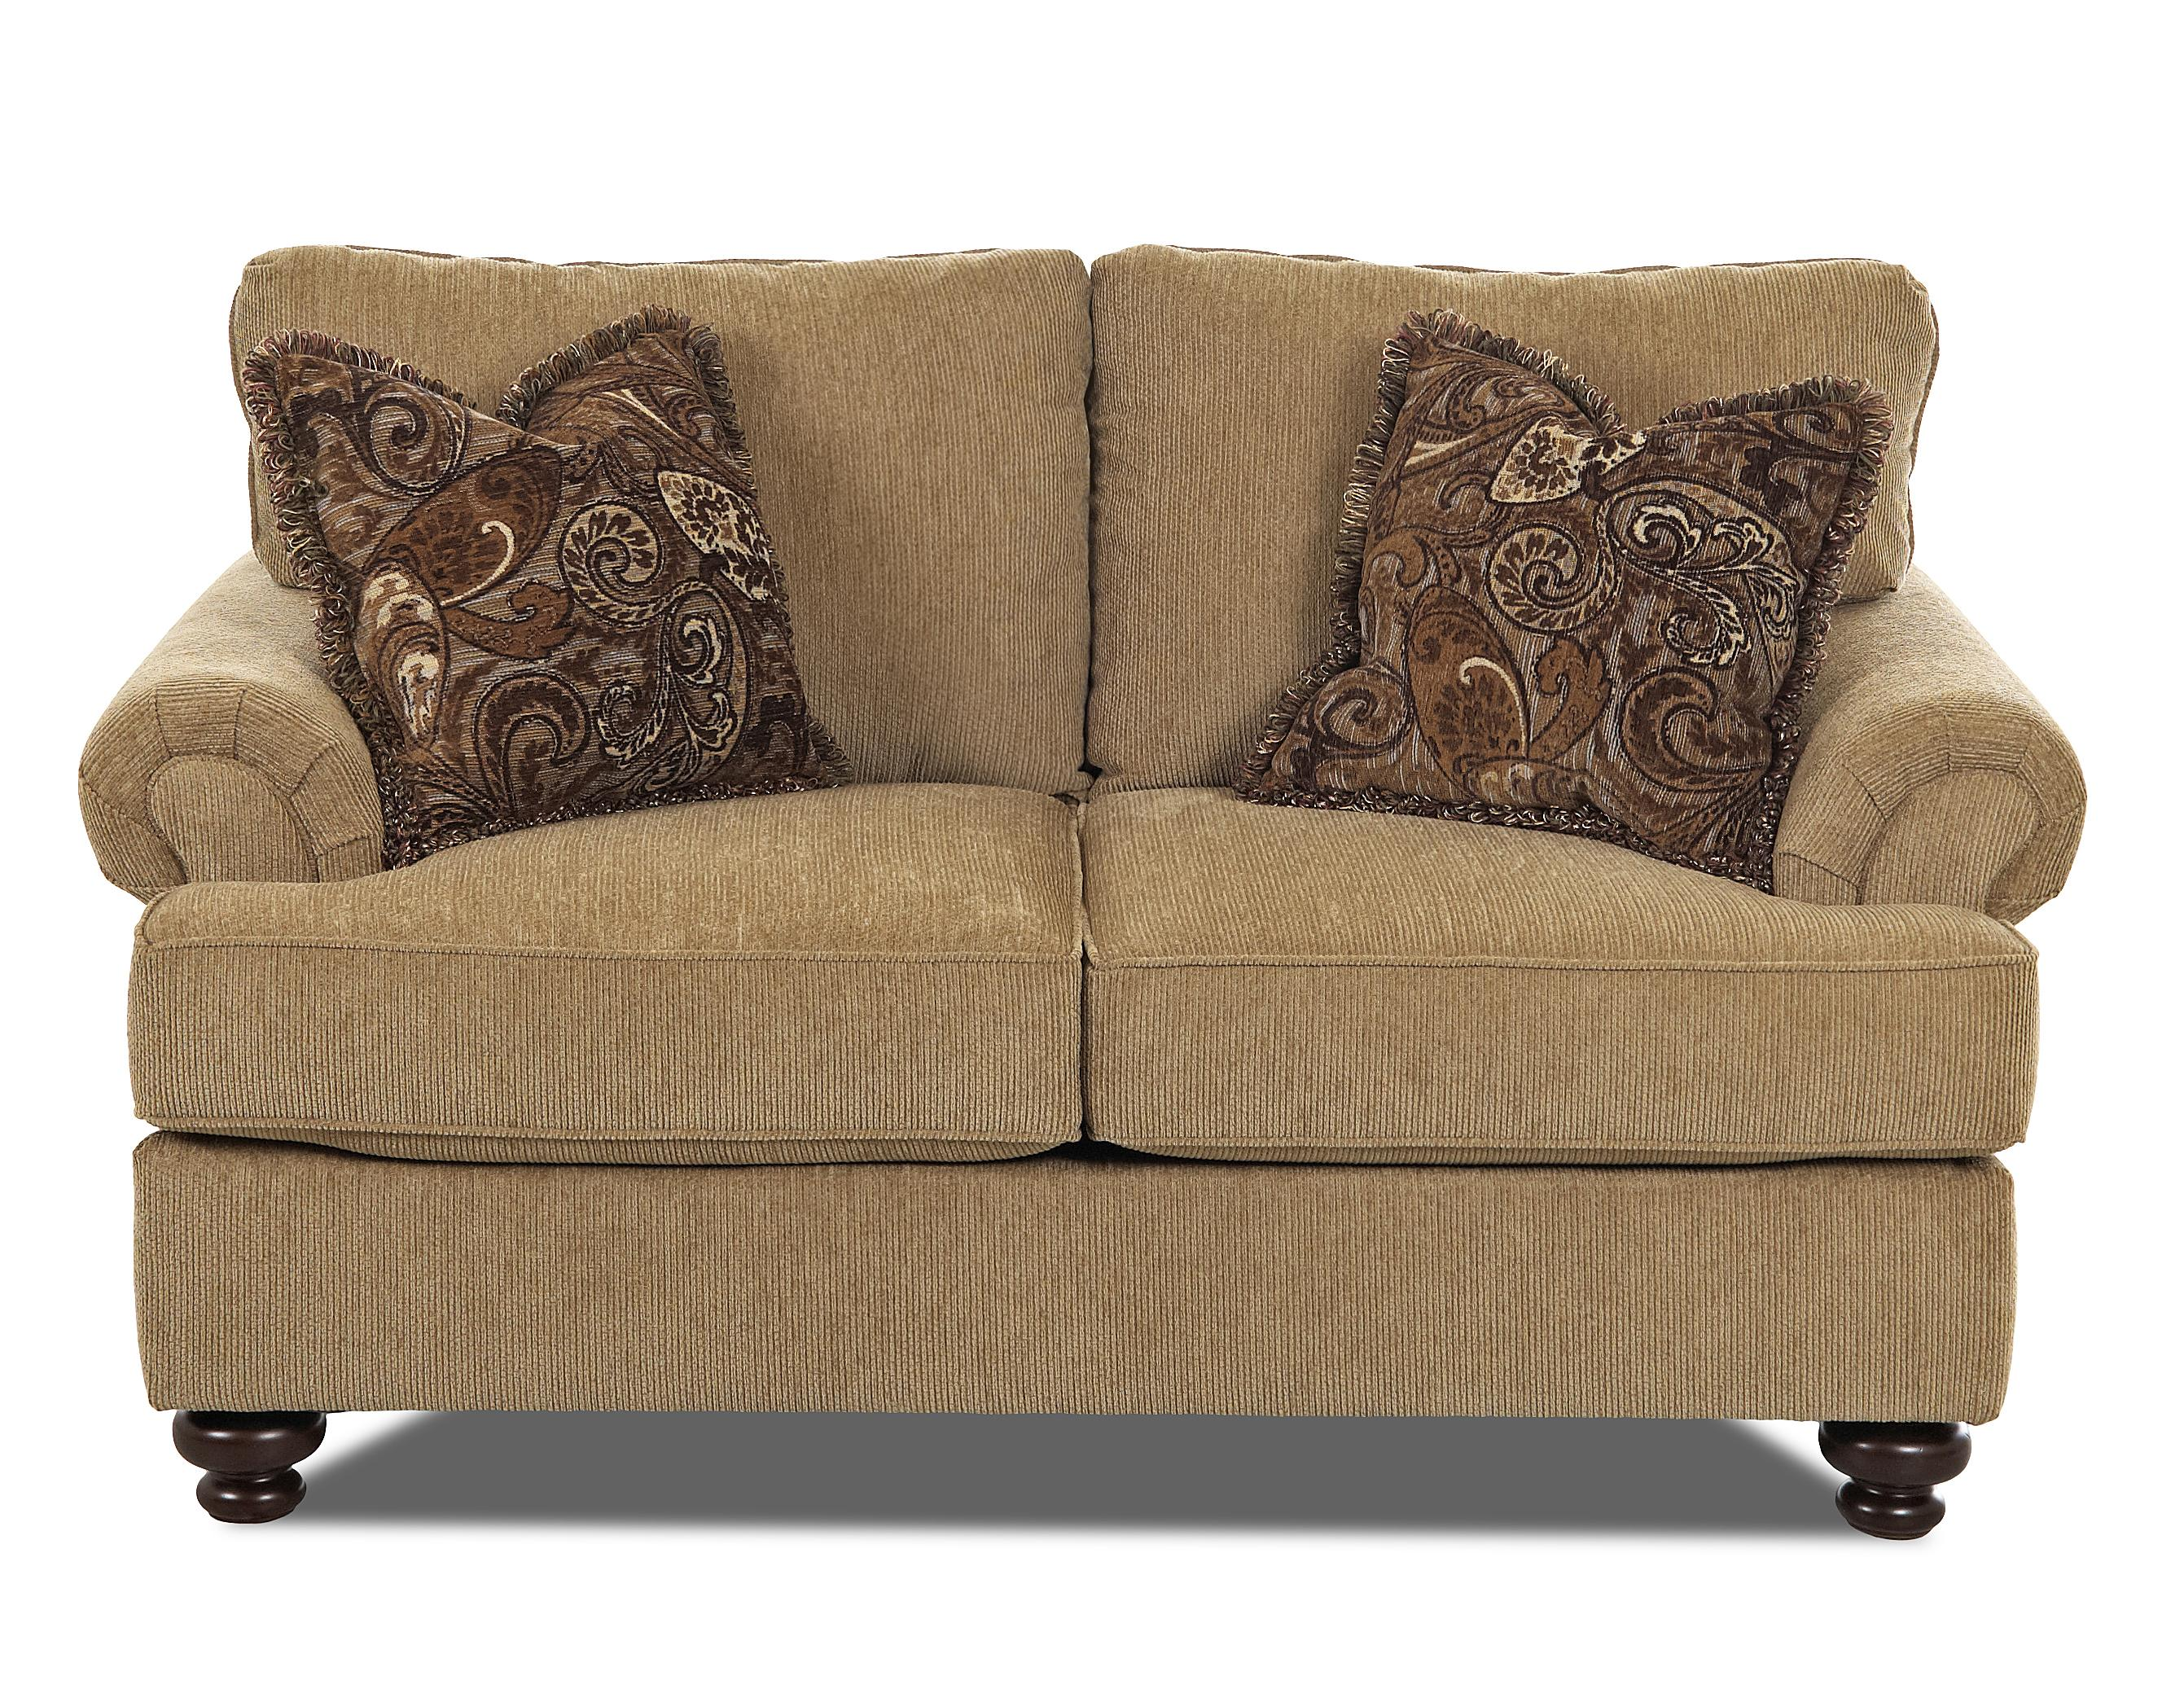 Klaussner Greenvale Traditional Loveseat - Item Number: K73500 LS